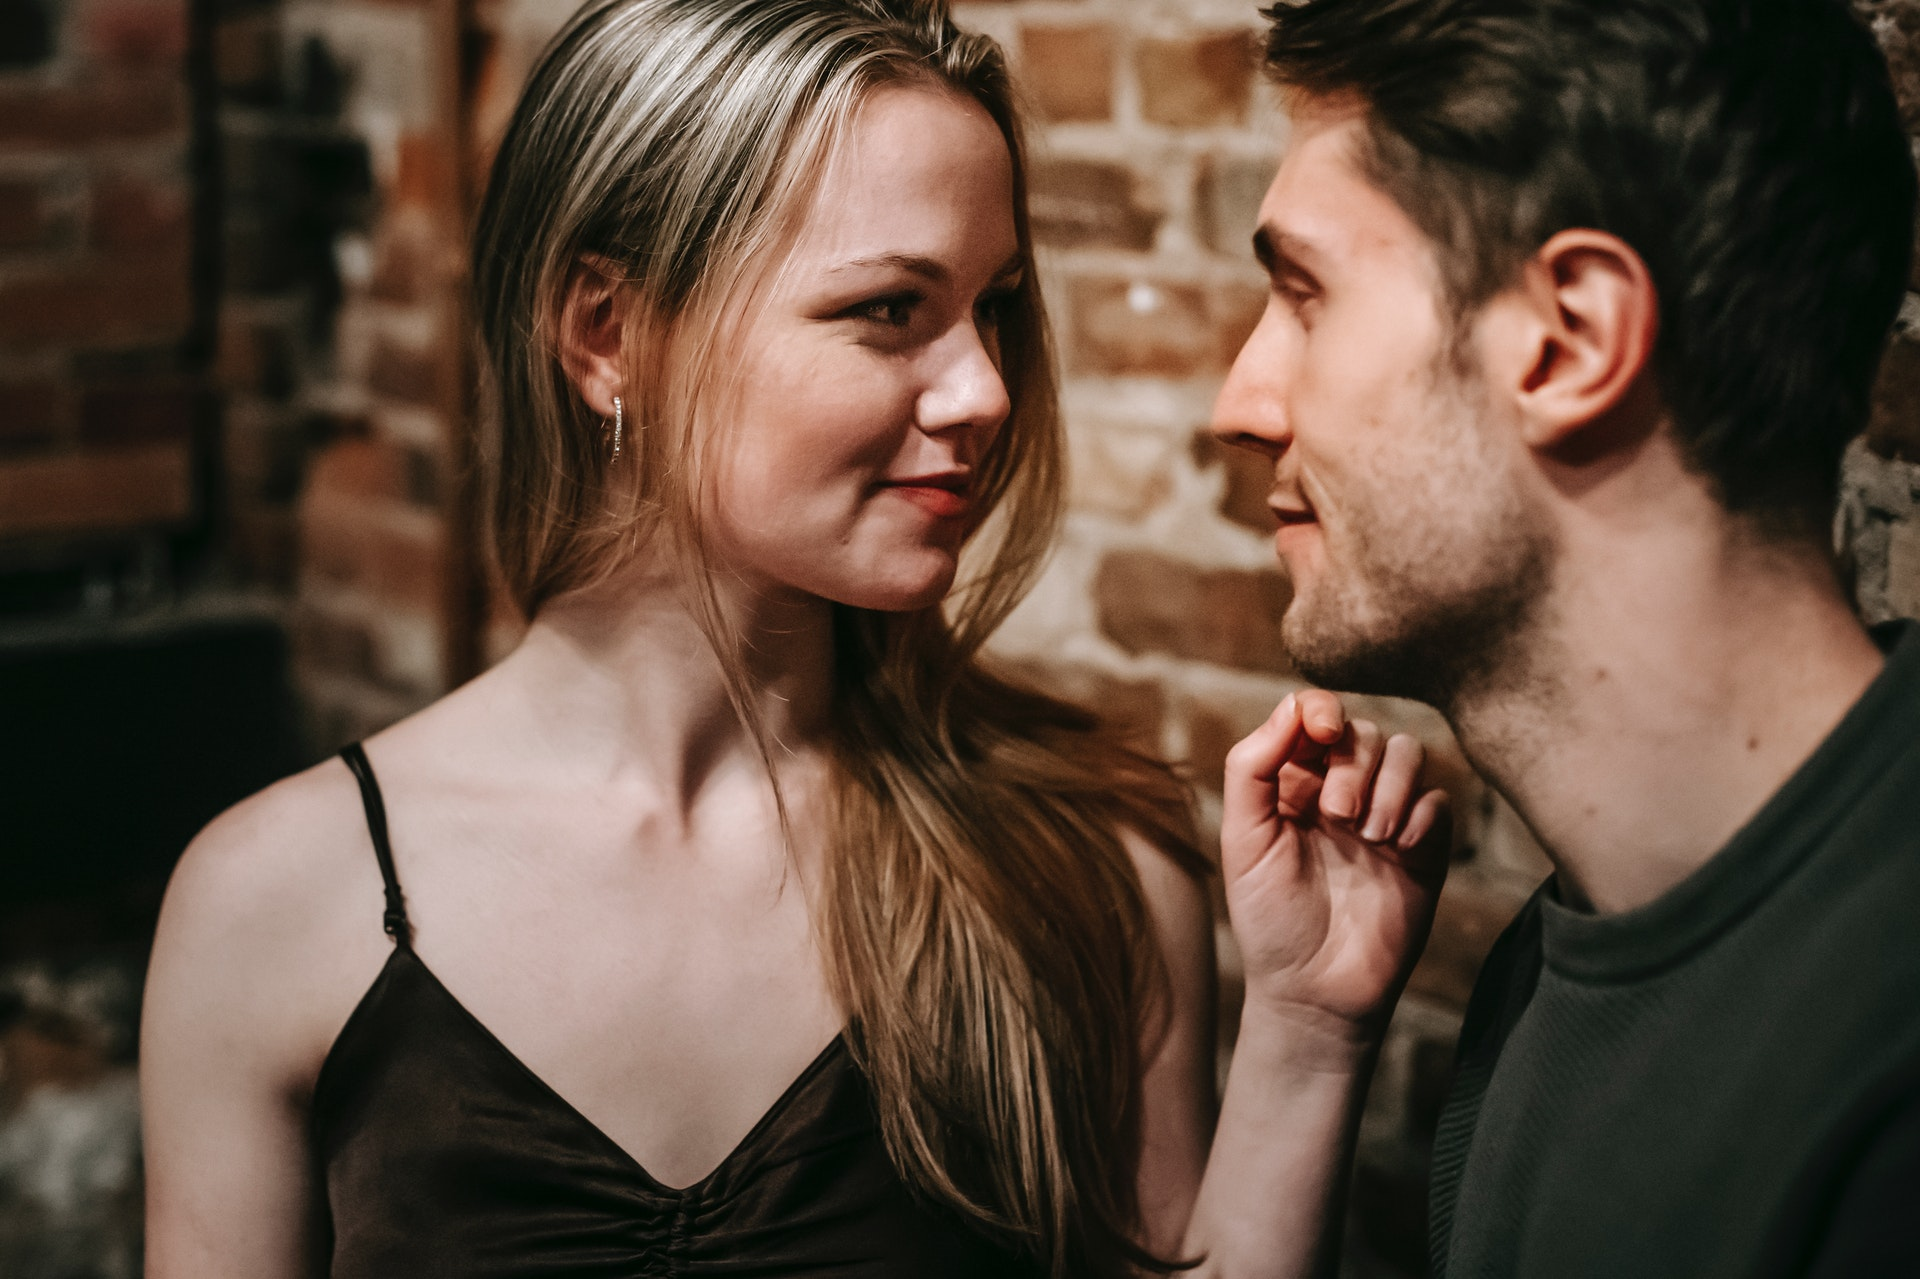 a man and a woman look passionately at each other